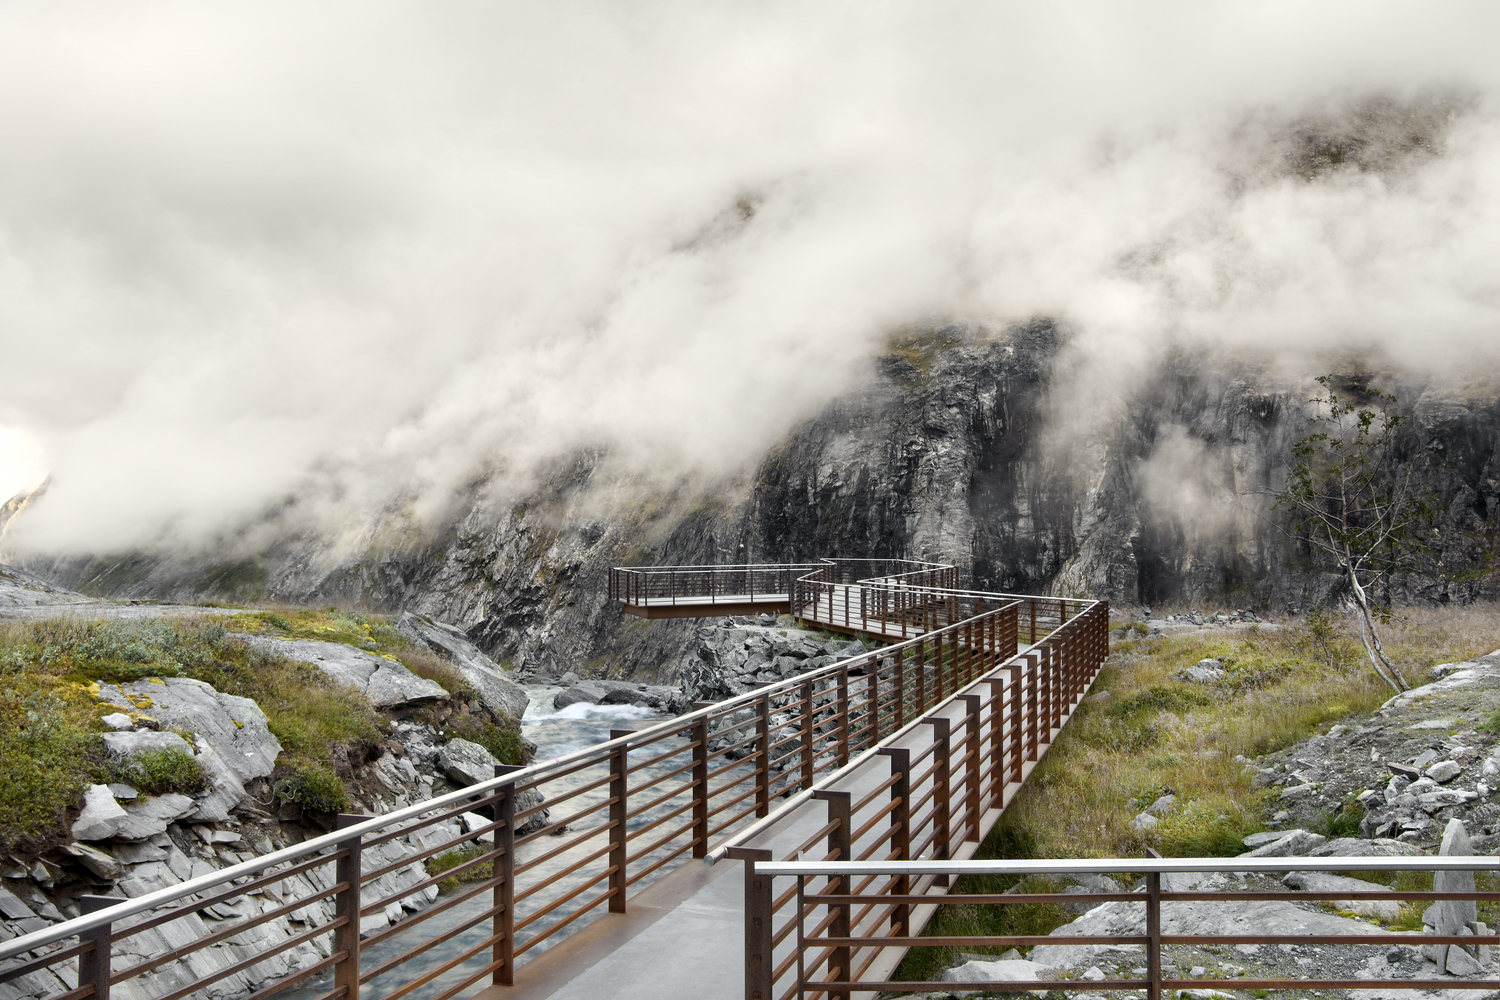 Trollstigen_Visitor_Centre_just3dscom_19